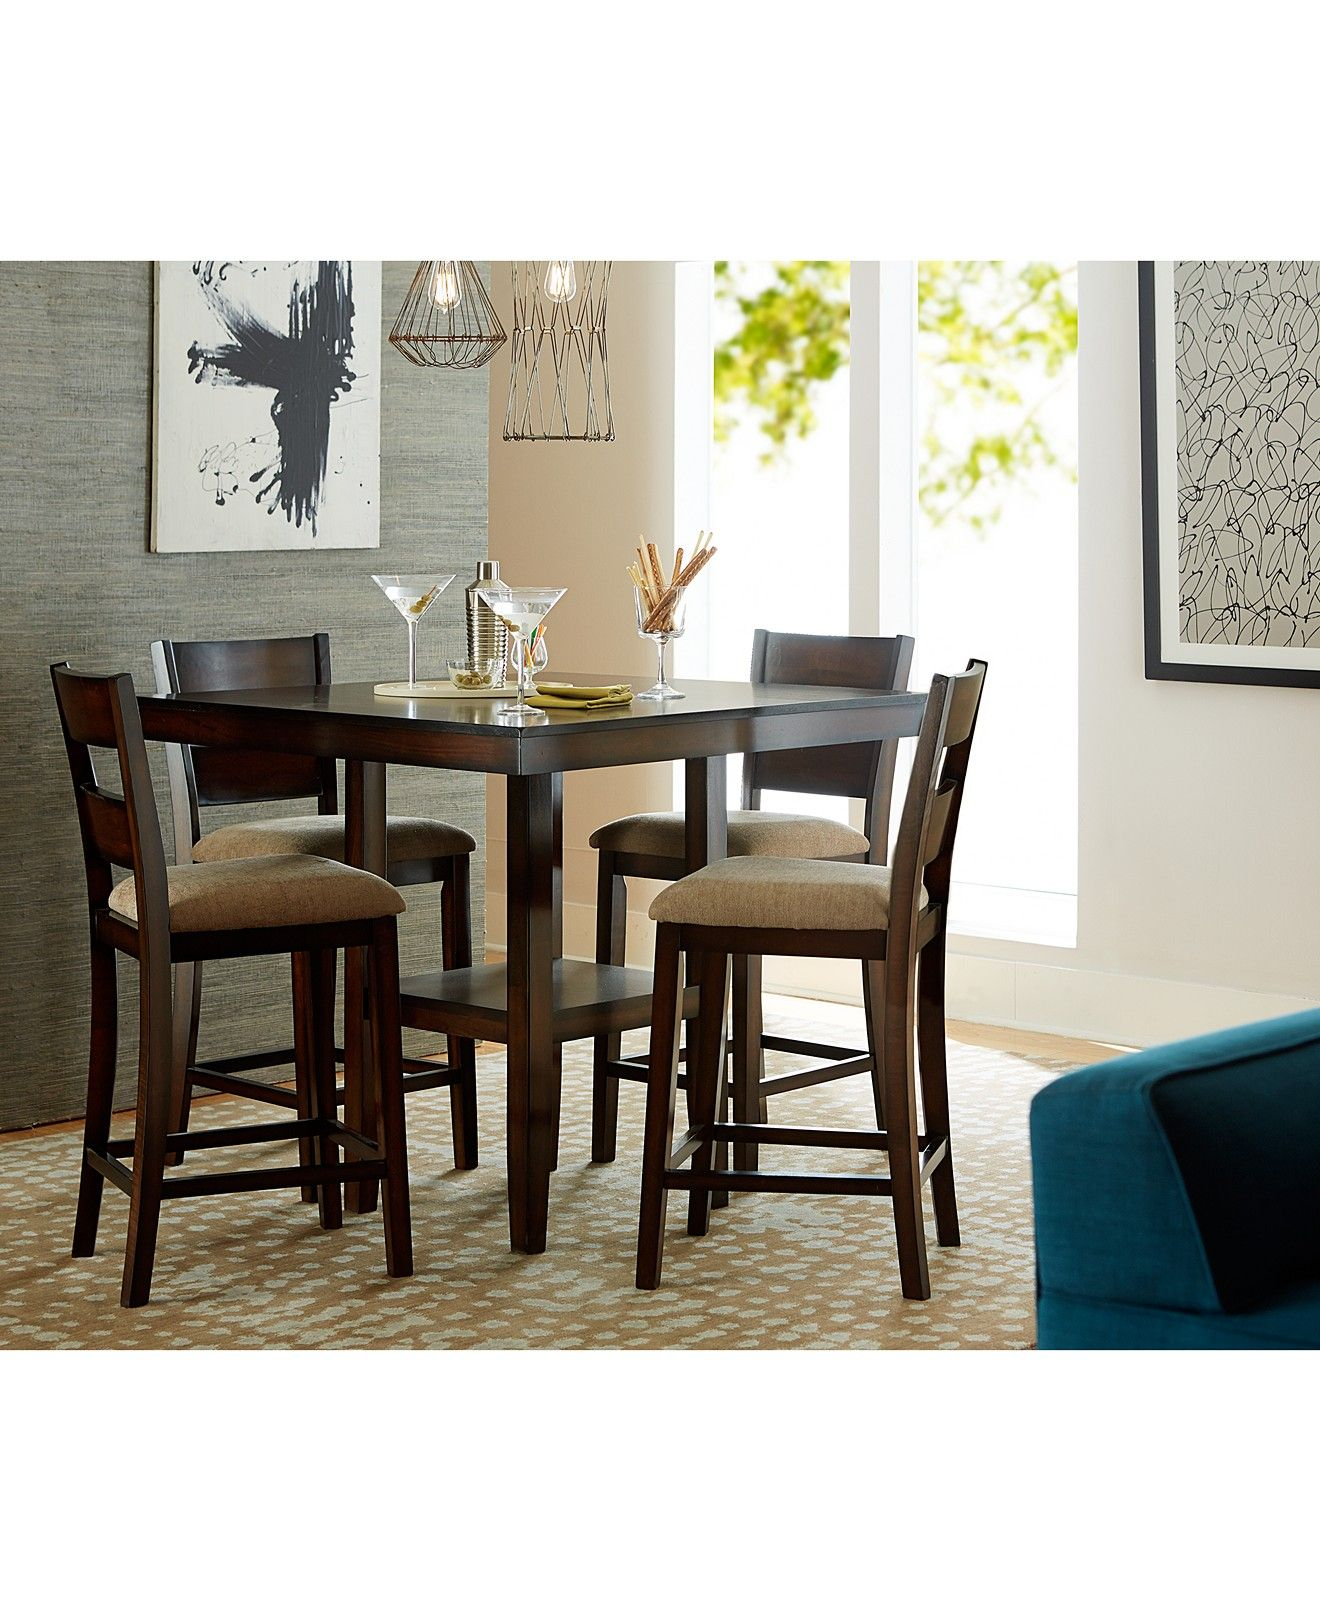 Branton Counter Height Dining Collection Apartment